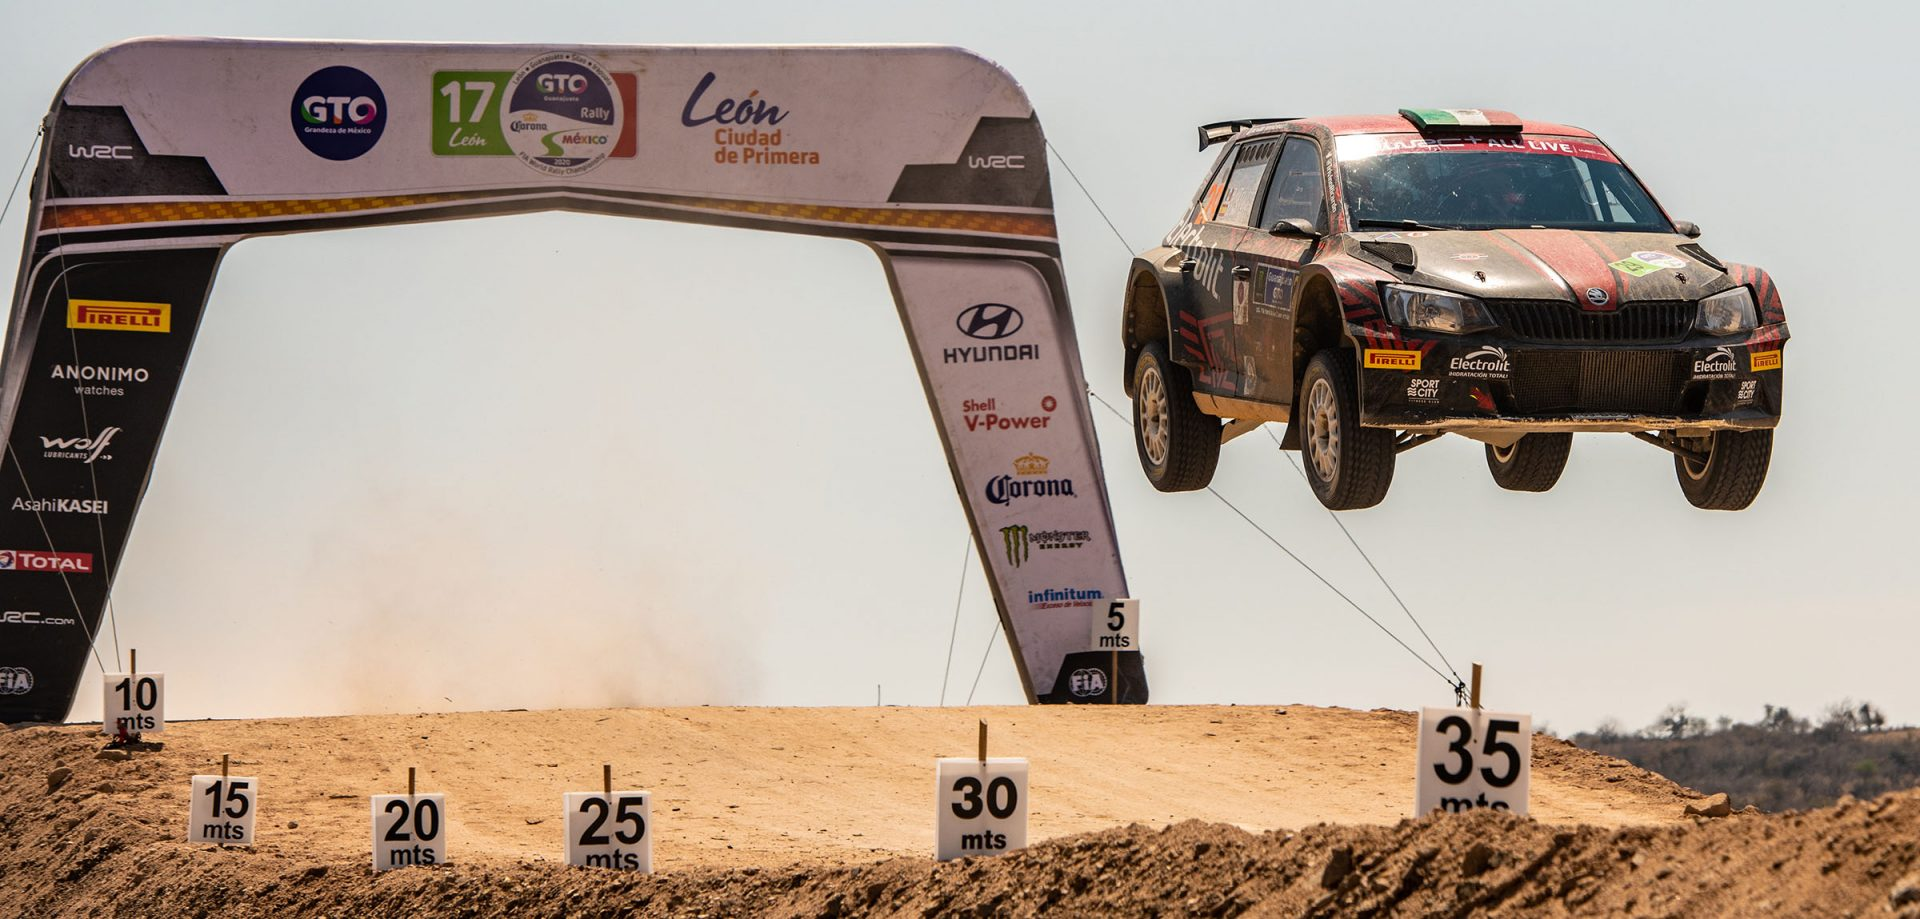 Download Smartphone Wallpapers from Rally Mexico